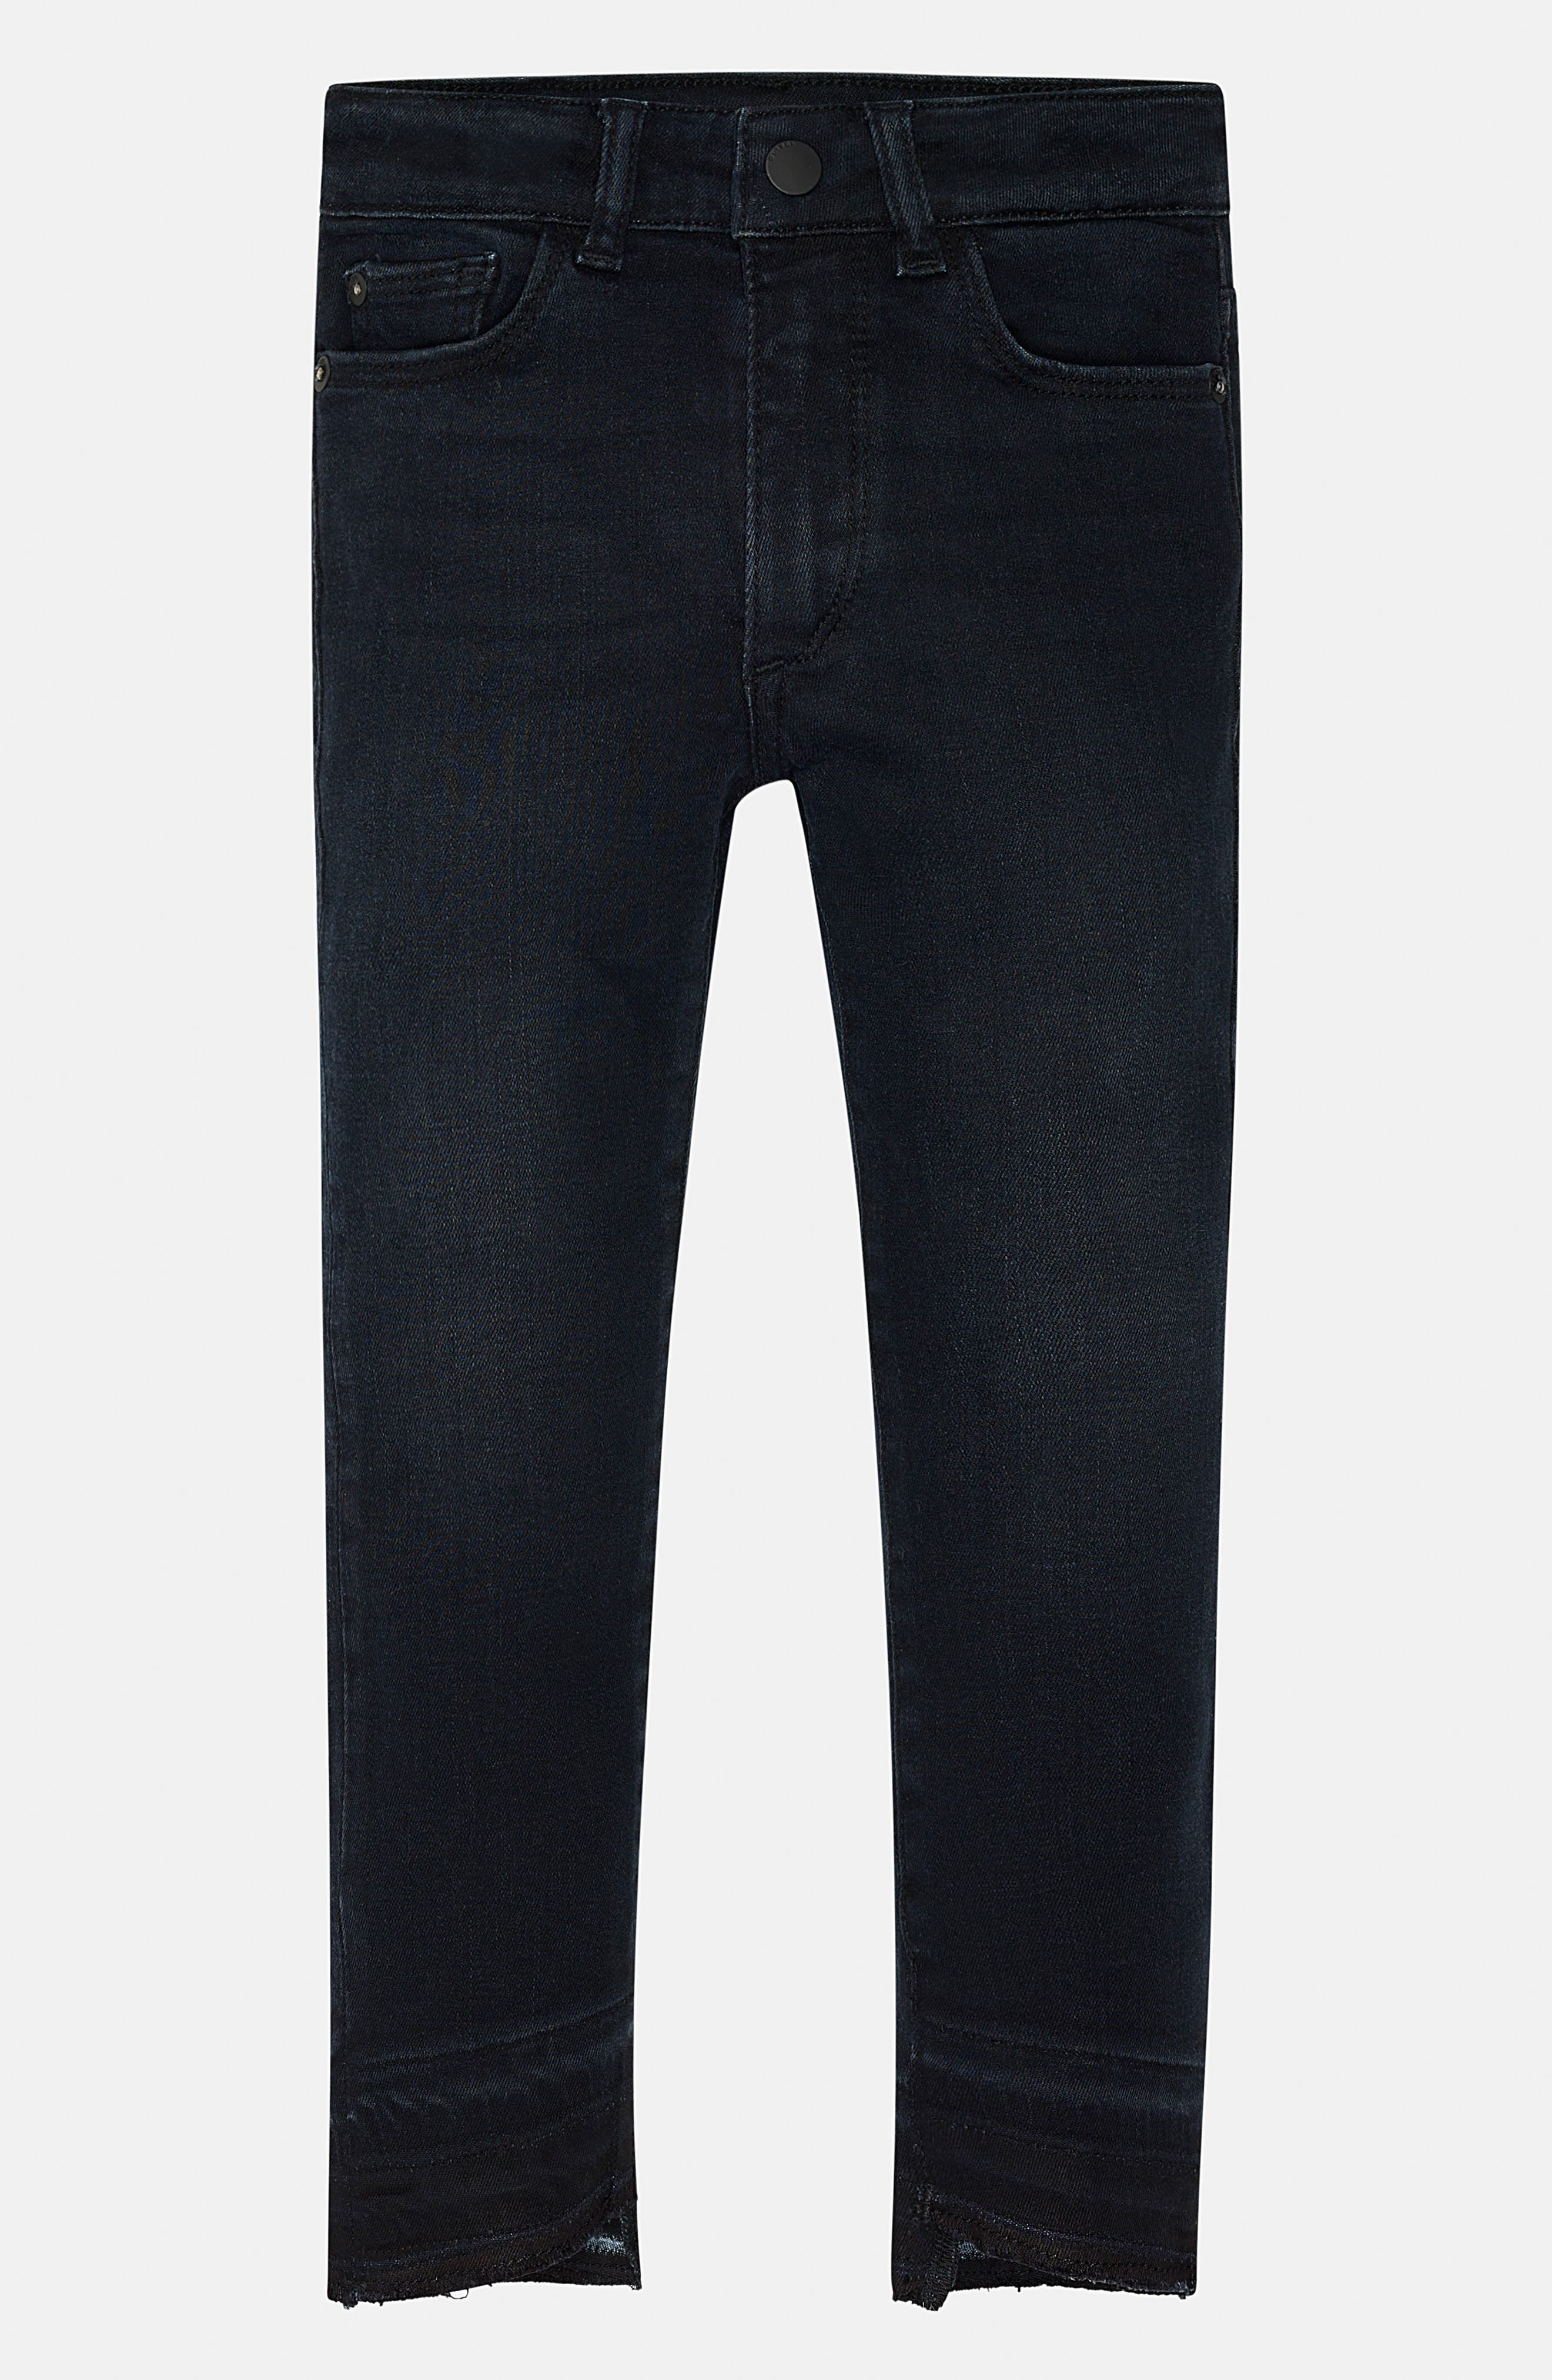 DL1961 Chloe Stretch Skinny Jeans (Toddler Girls & Little Girls)